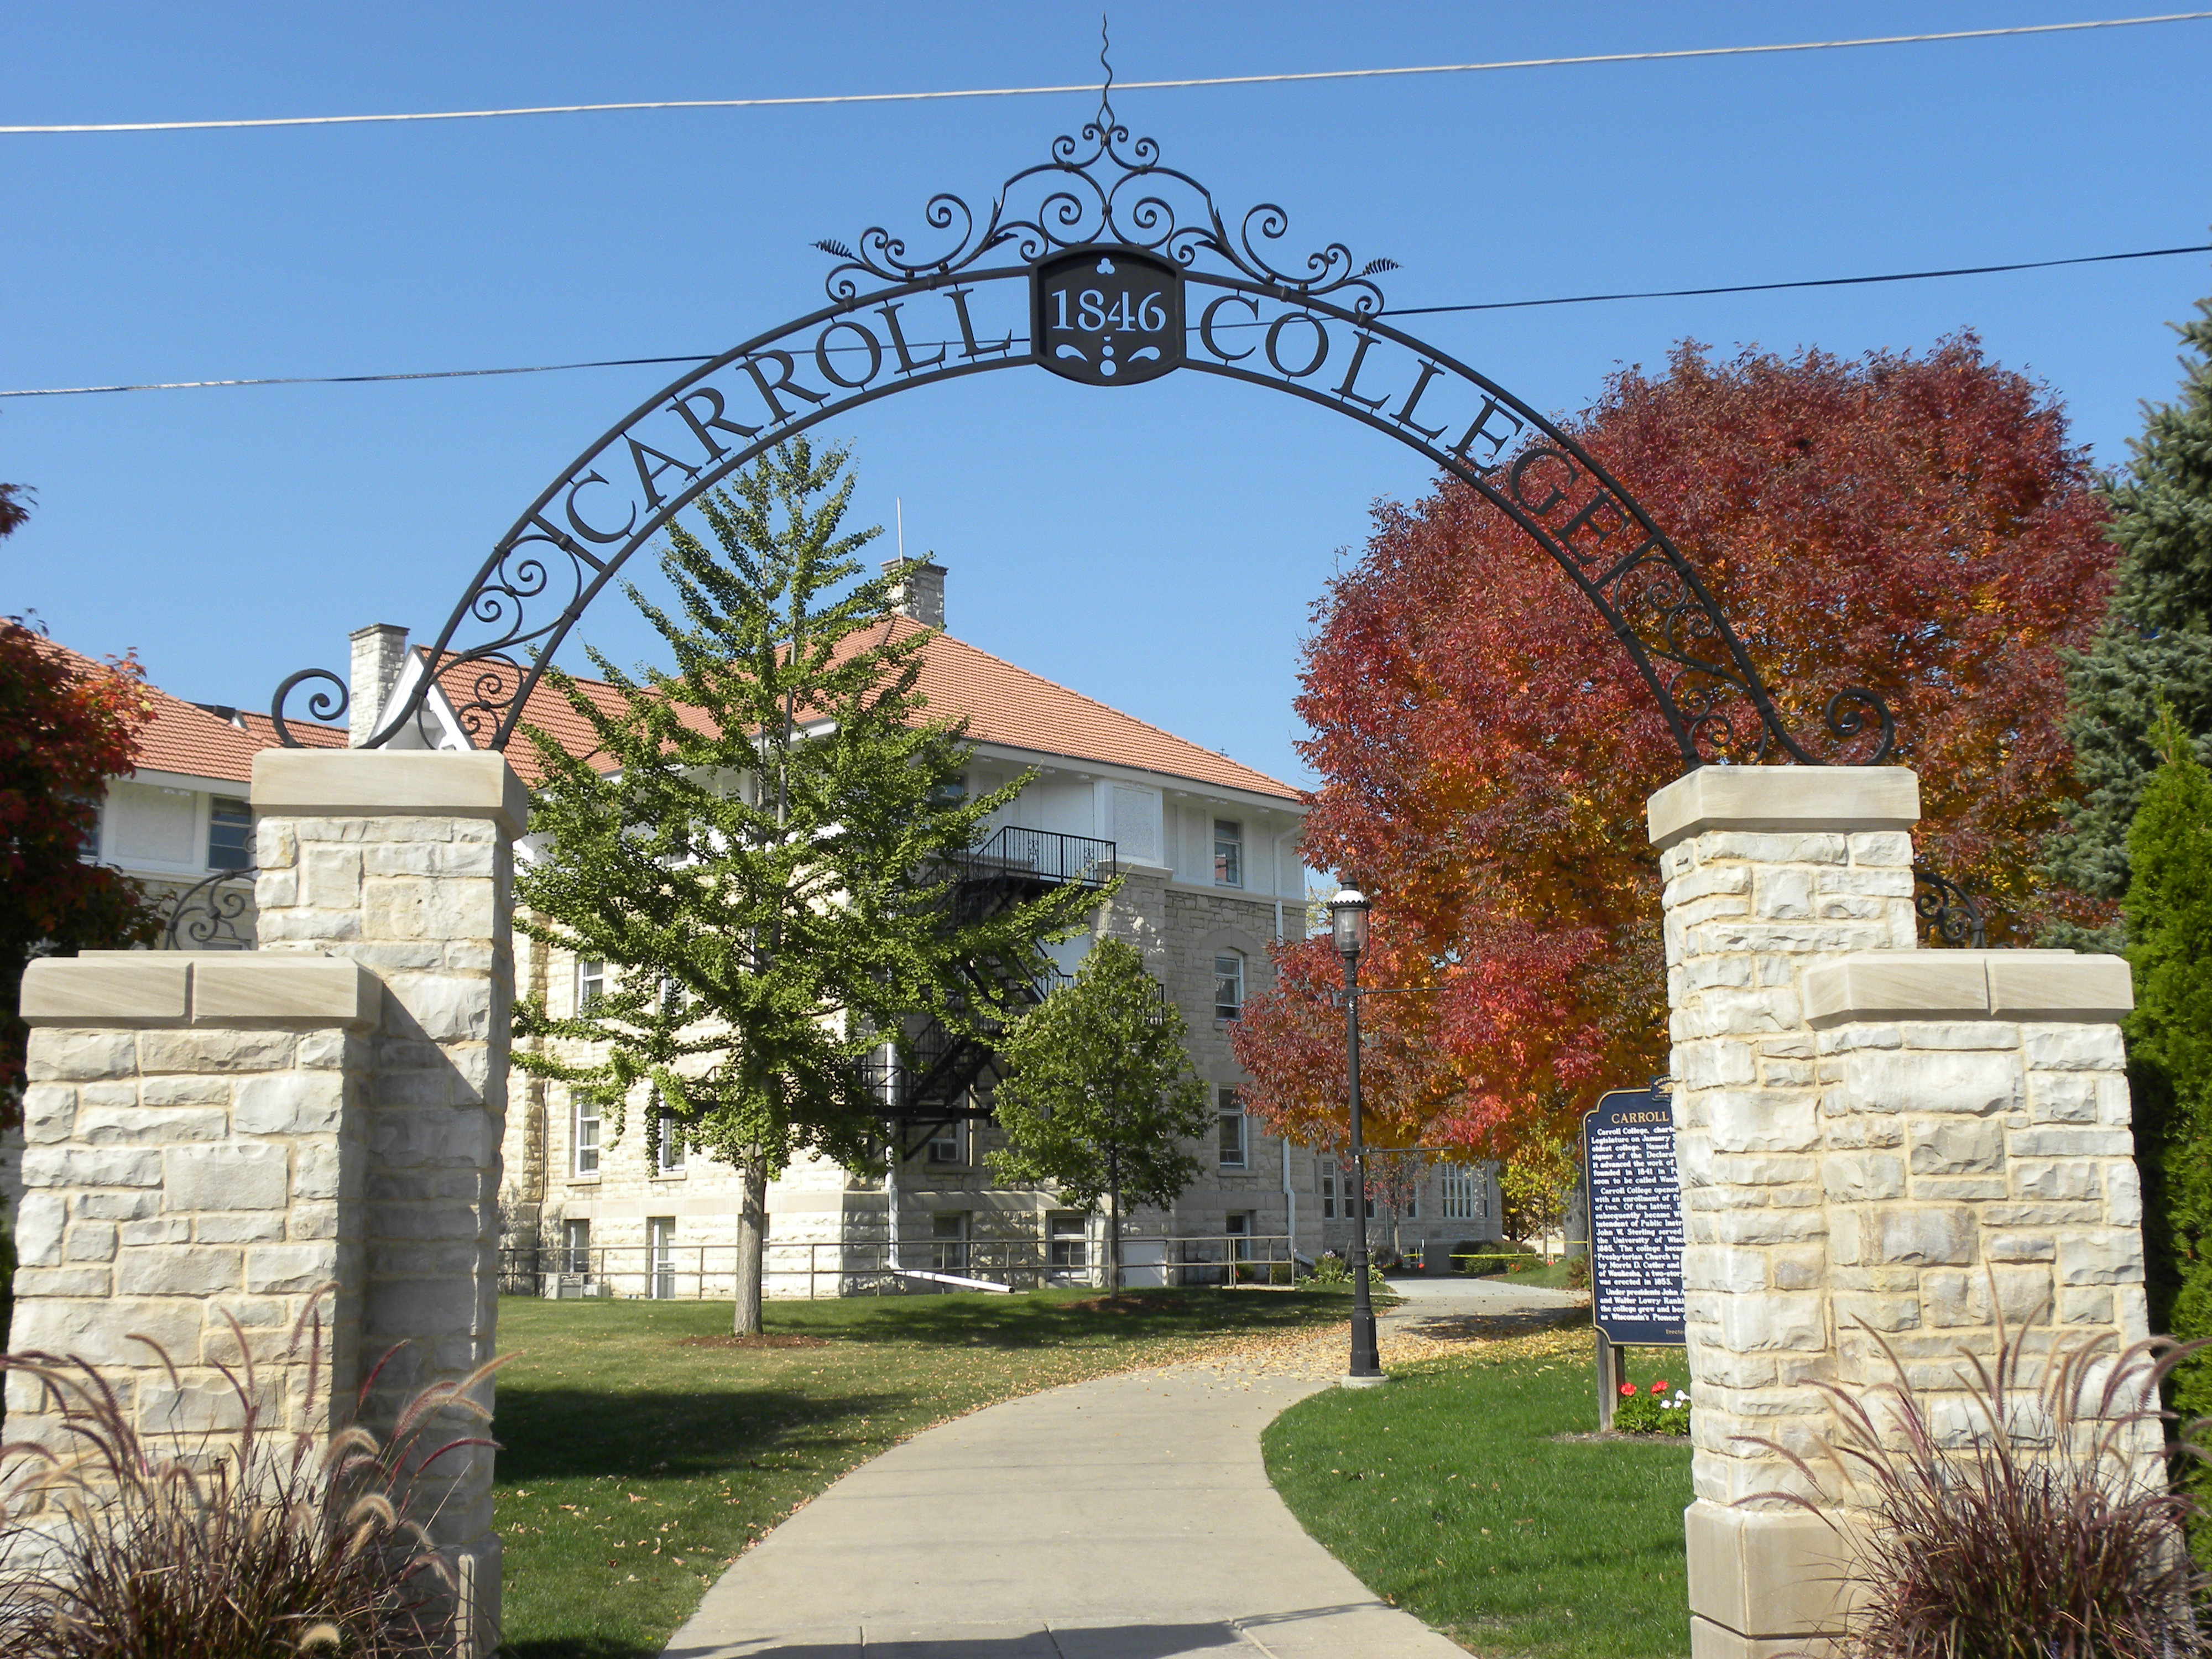 Welcome To Carroll University by wolffang73 on DeviantArt